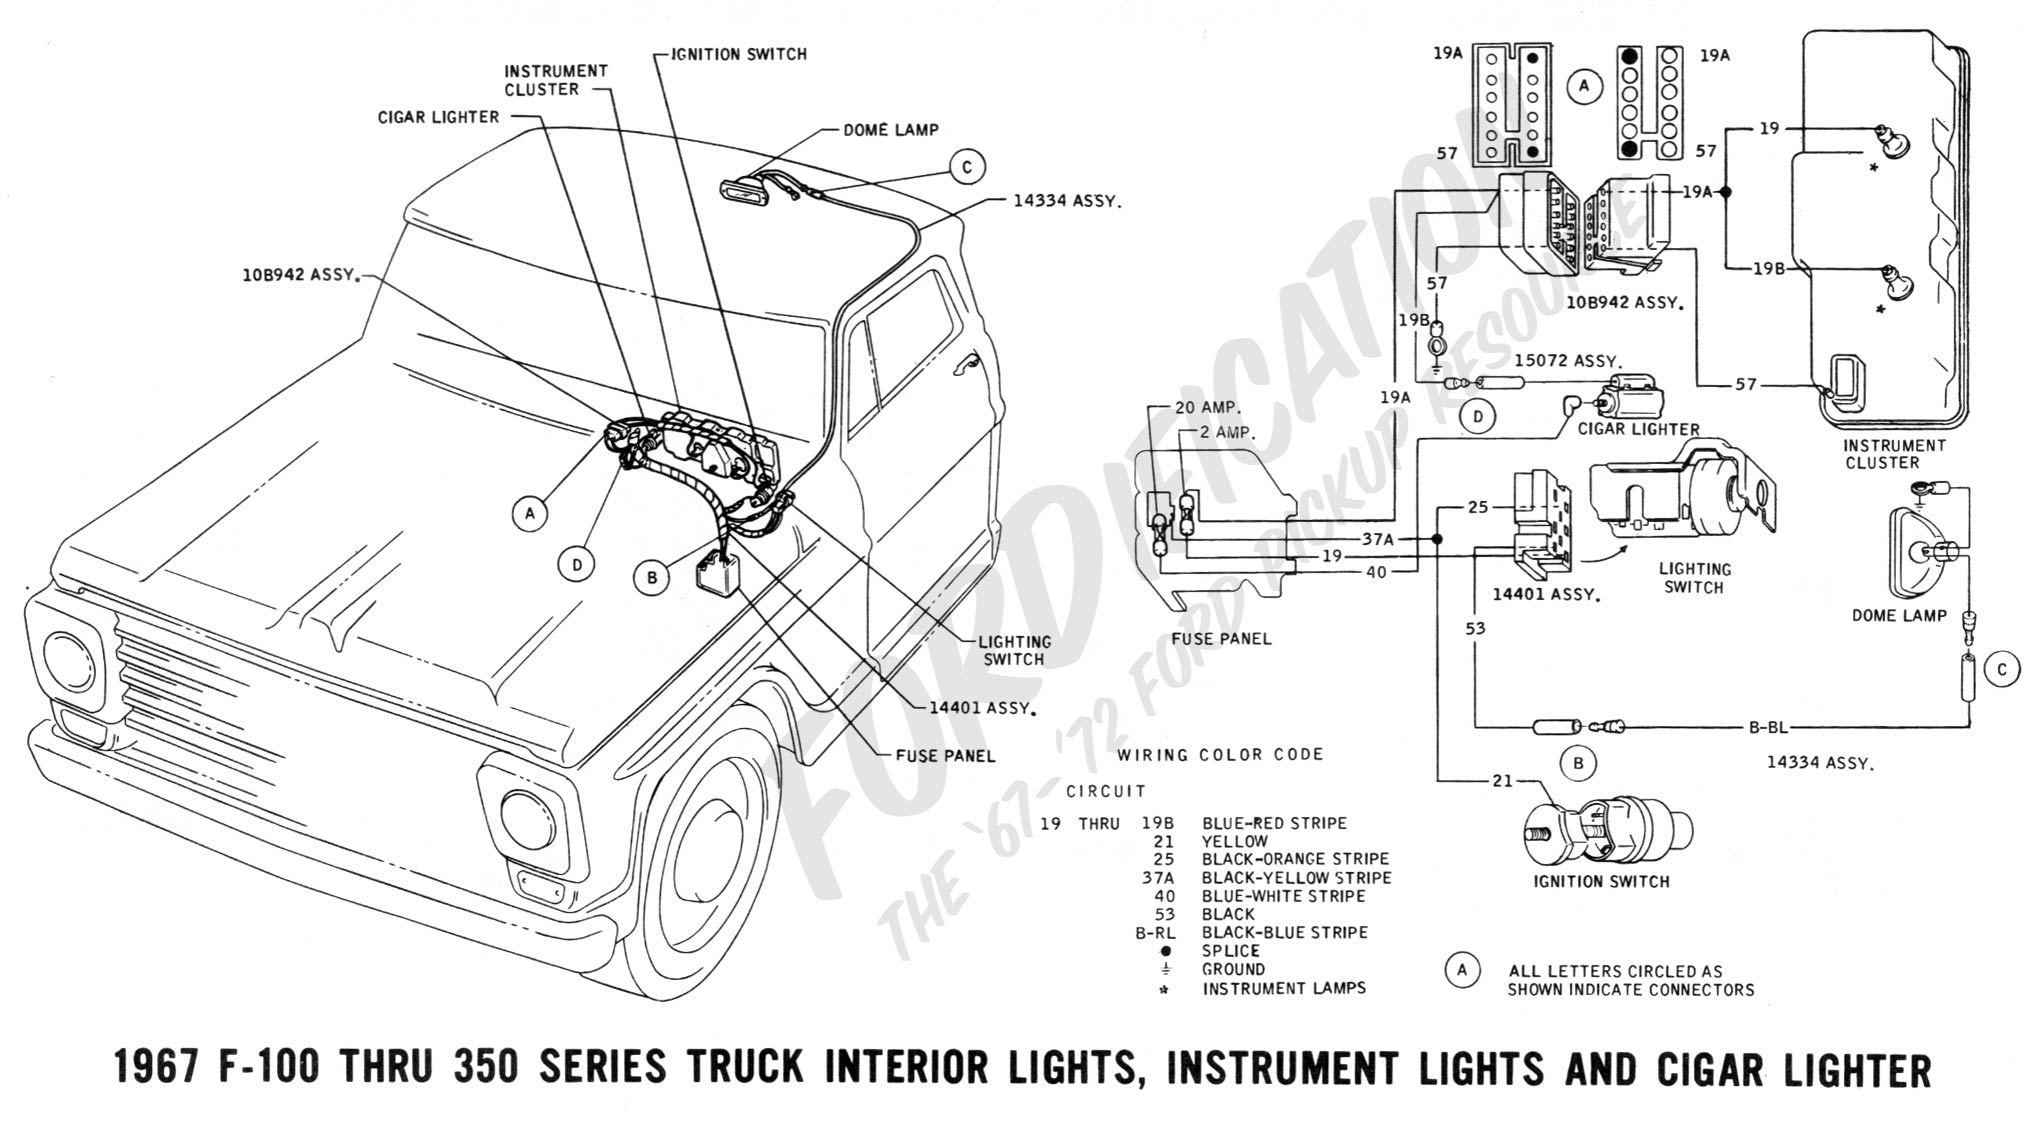 1985 Suzuki Gs550 Wiring Diagram from i0.wp.com